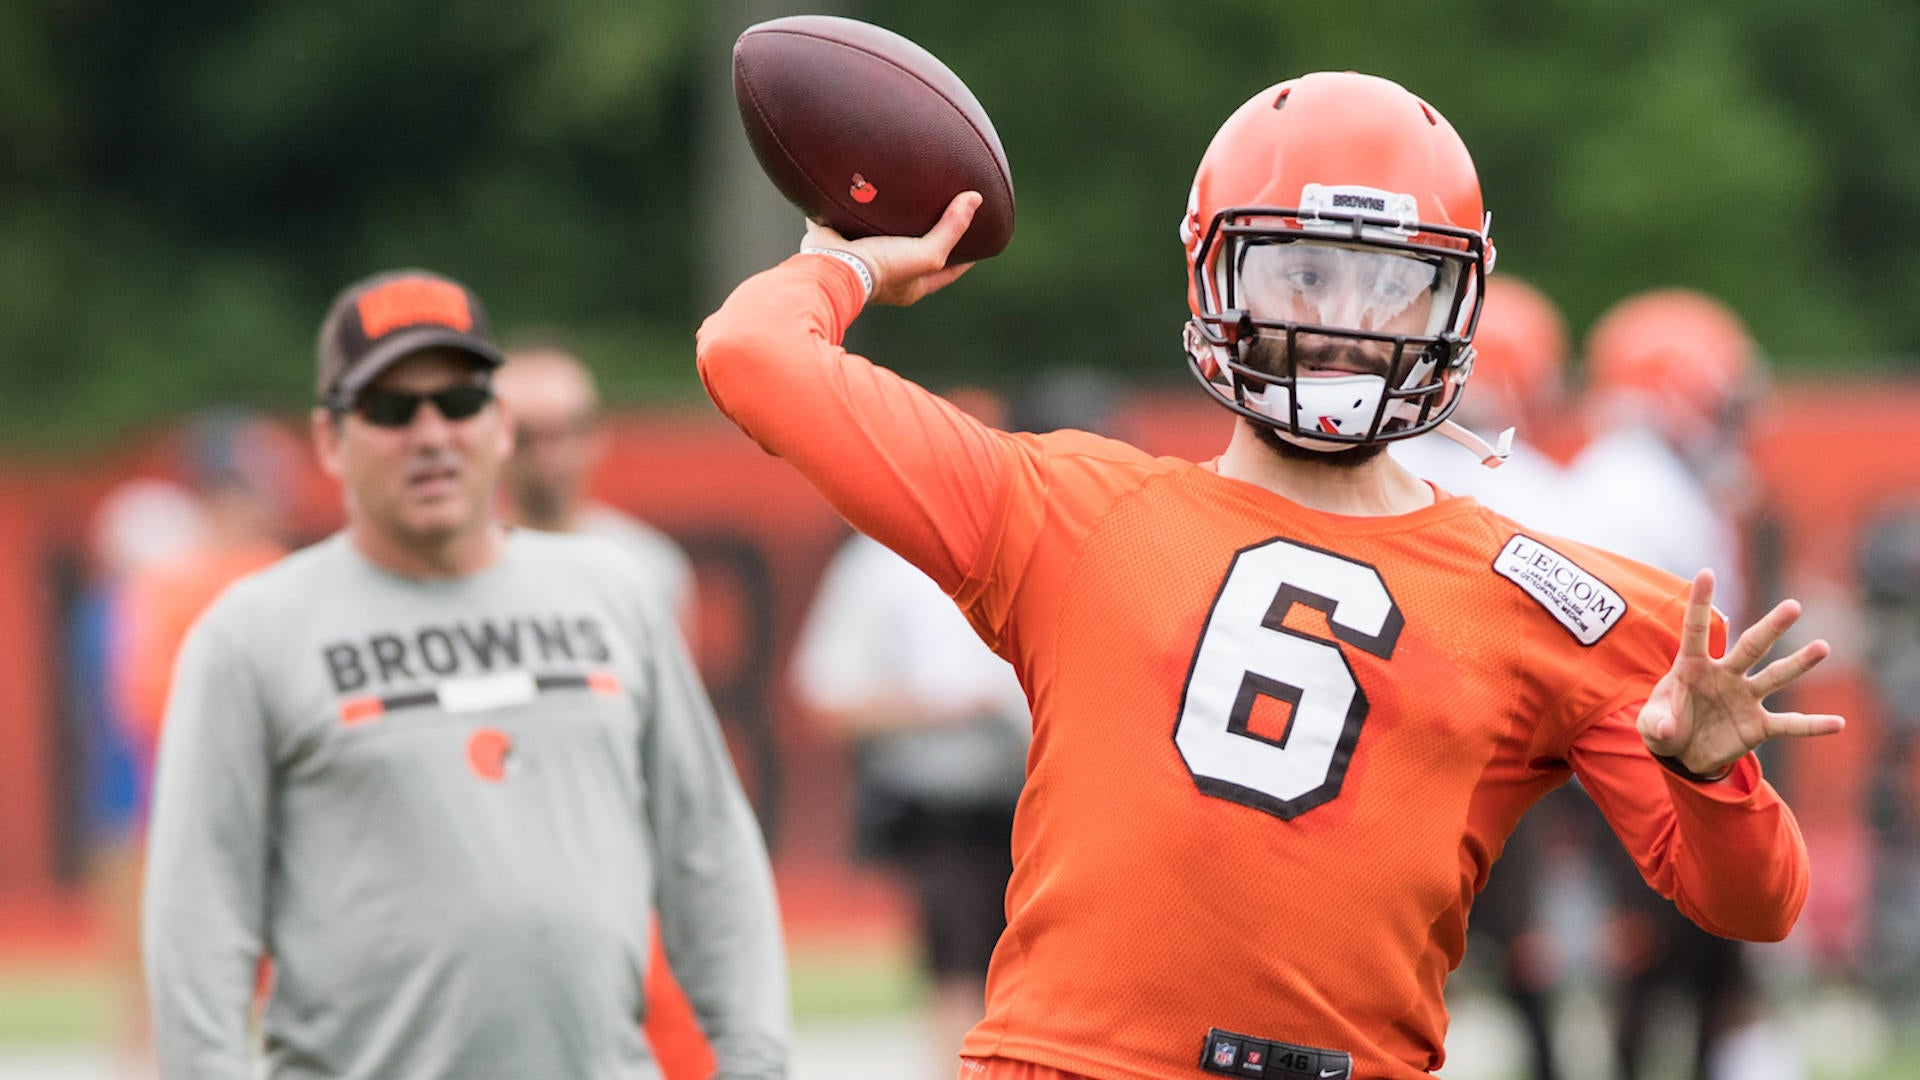 daea4b50b 2018 NFL Training Camps  Rookie Baker Mayfield brings excitement ...